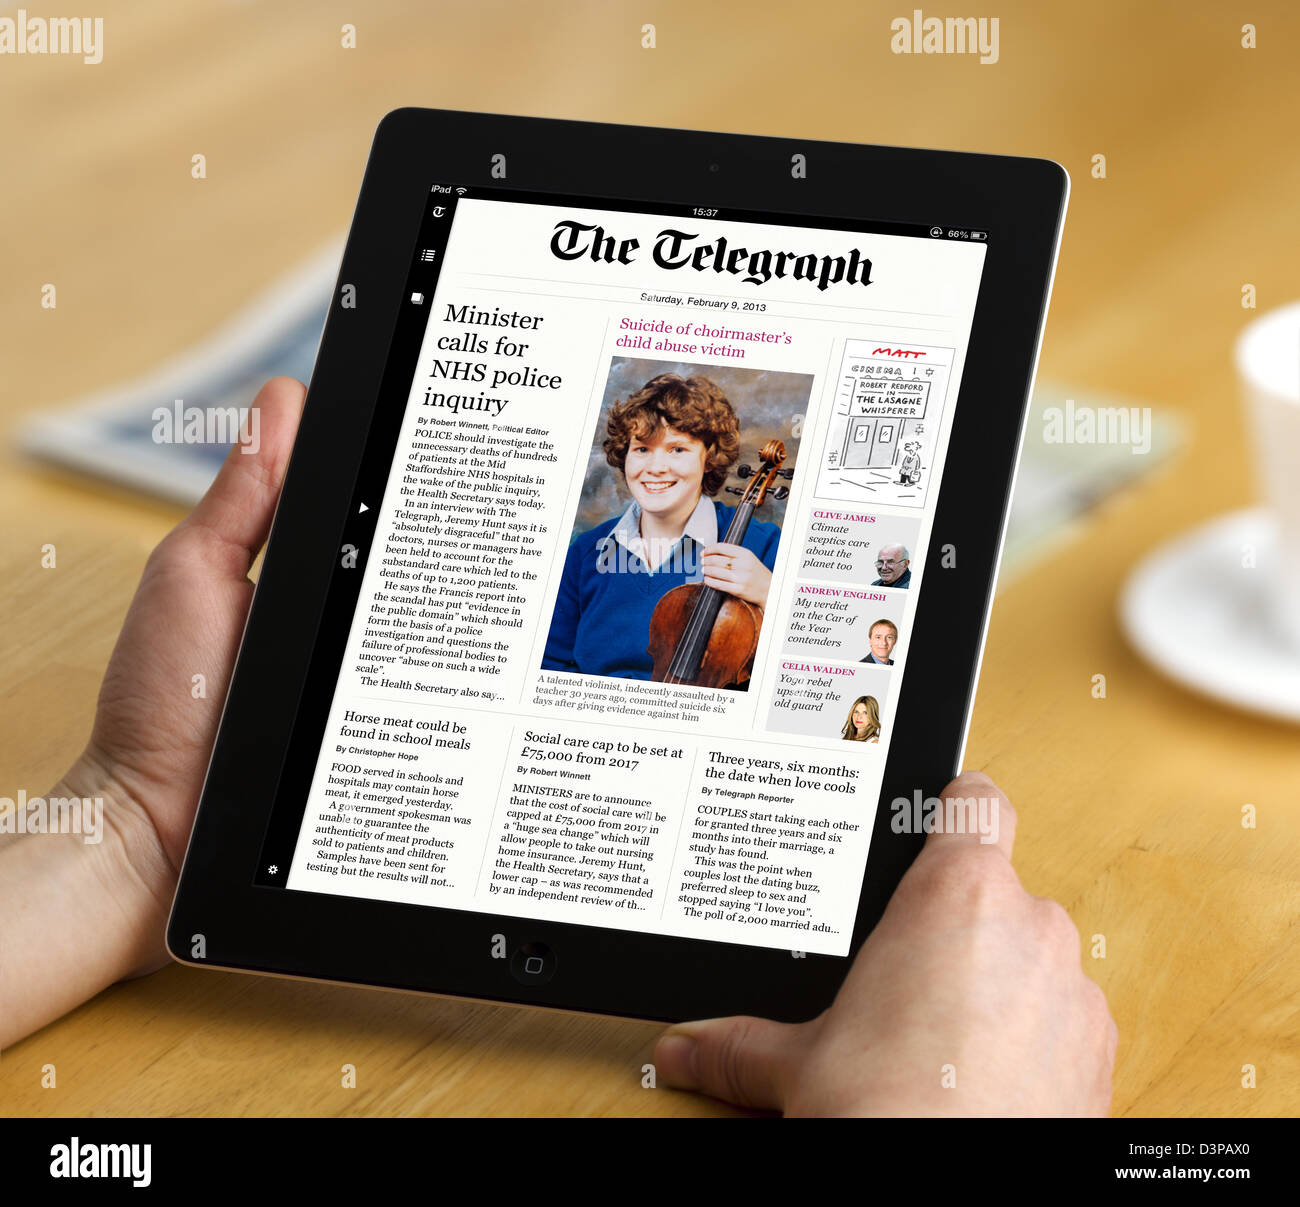 Reading the app edition of the Daily Telegraph newspaper on a 4th Generation iPad, UK - Stock Image